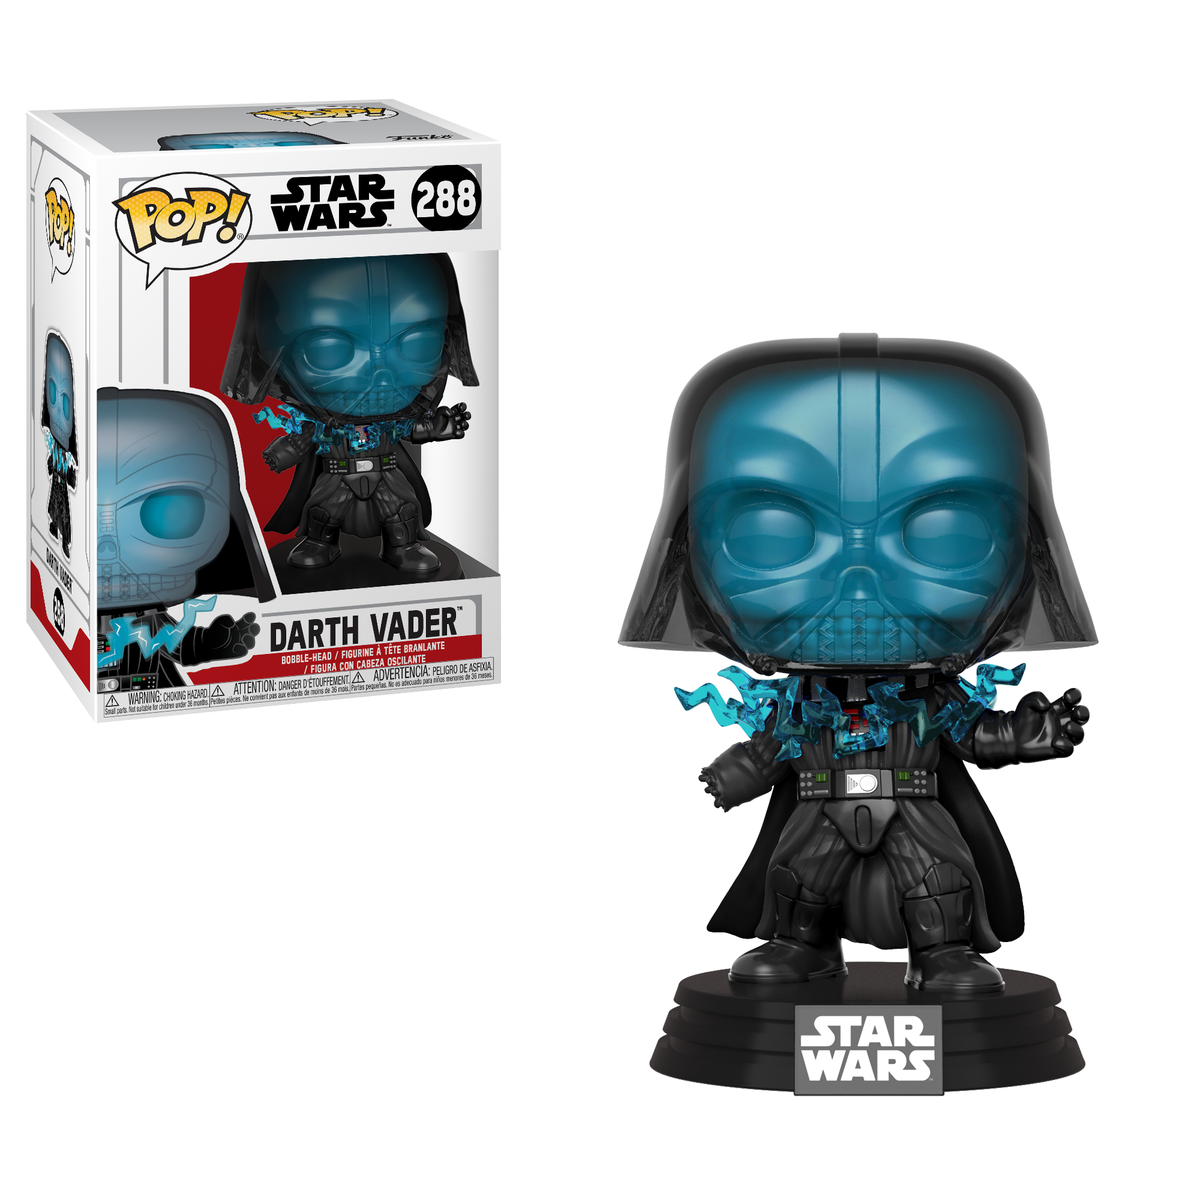 RT &amp; follow @OriginalFunko for the chance to win a Darth Vader Pop! <br>http://pic.twitter.com/M8vpgvrzzt